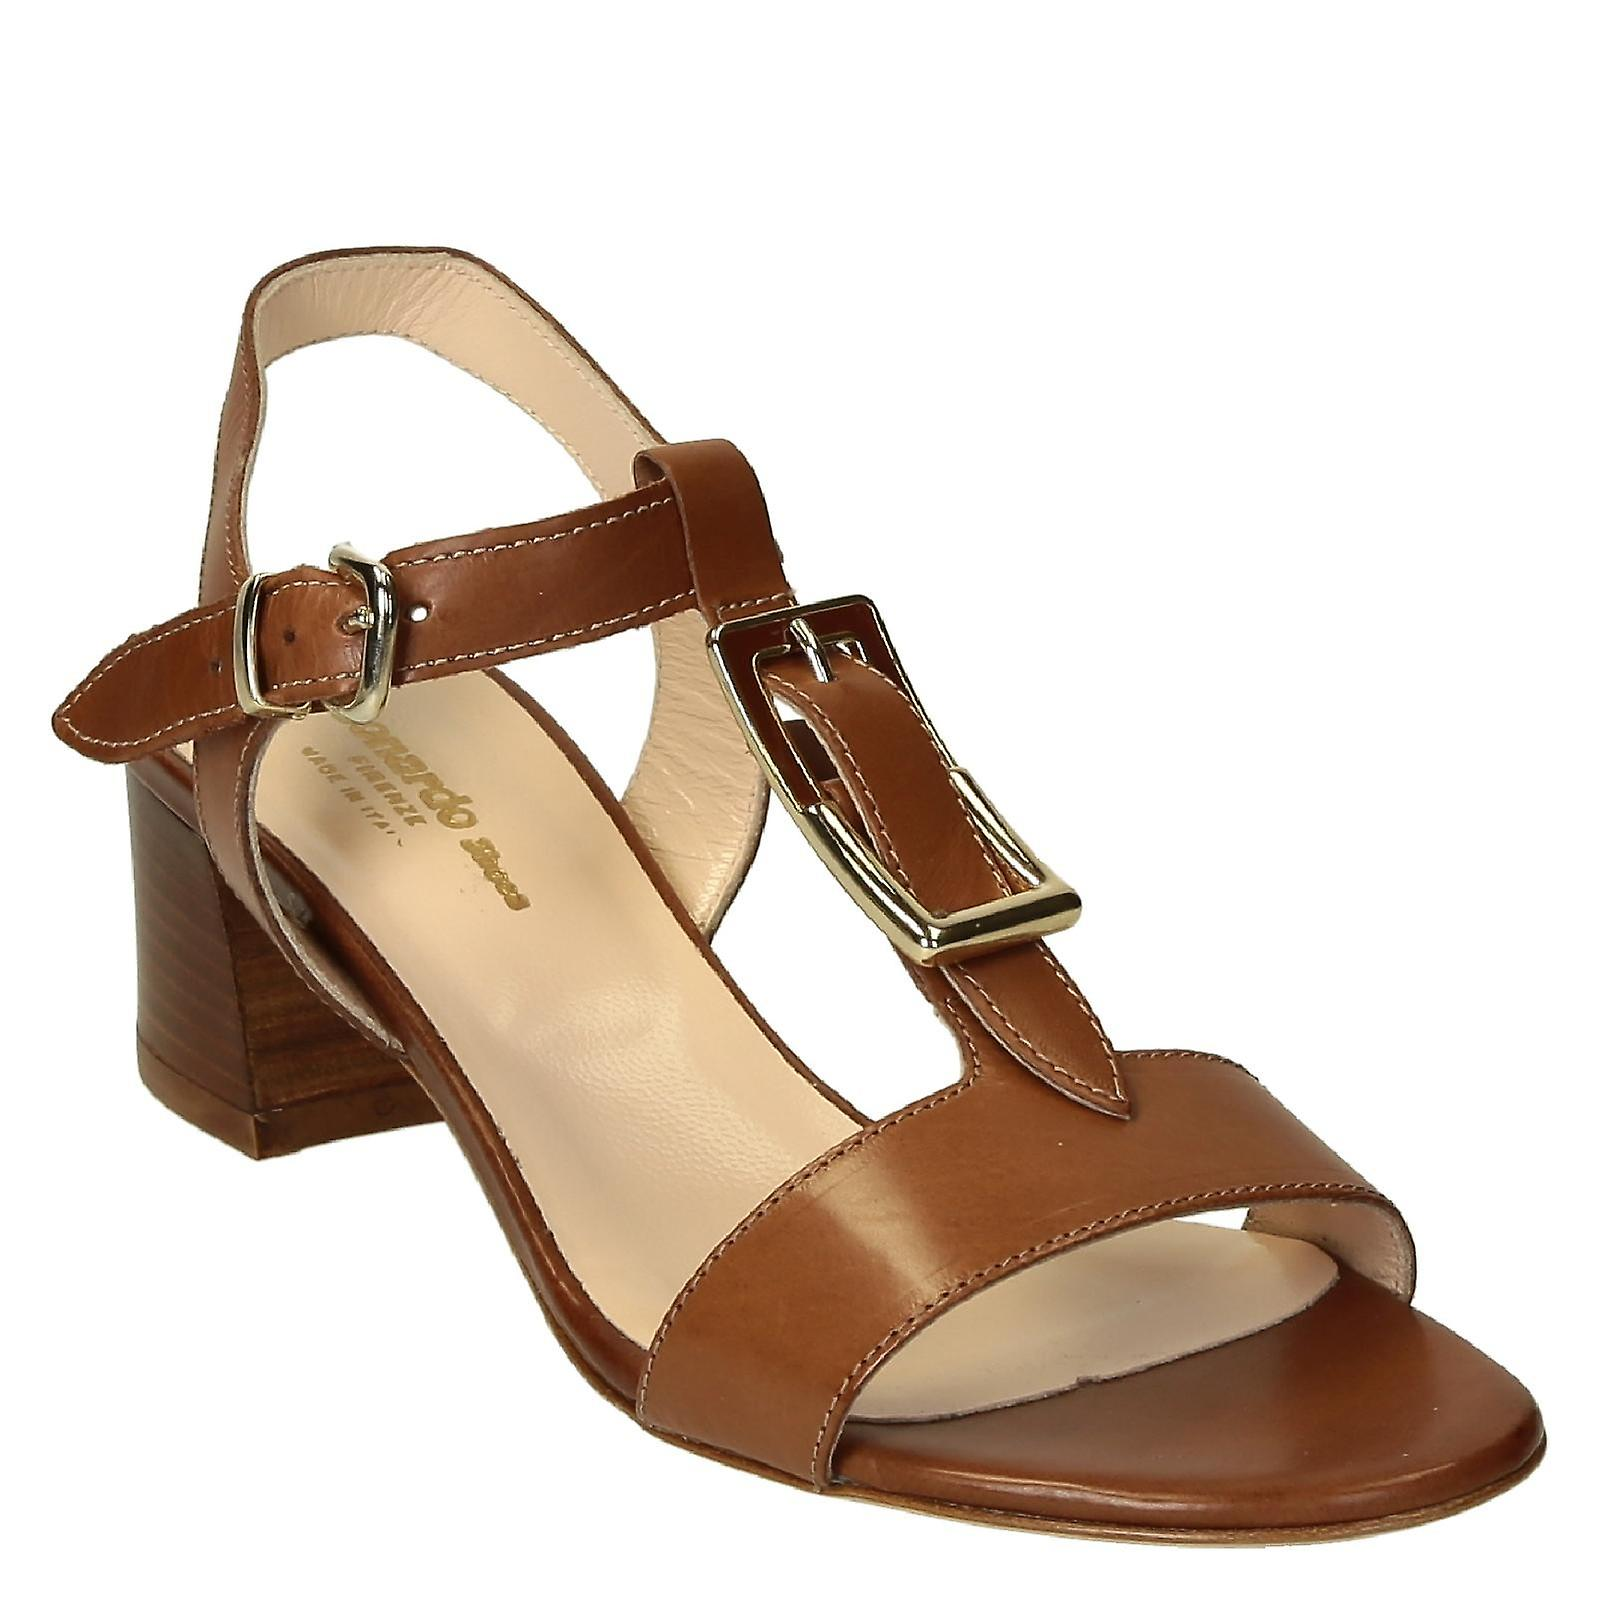 Medium heels ankle strap sandals in brown leather